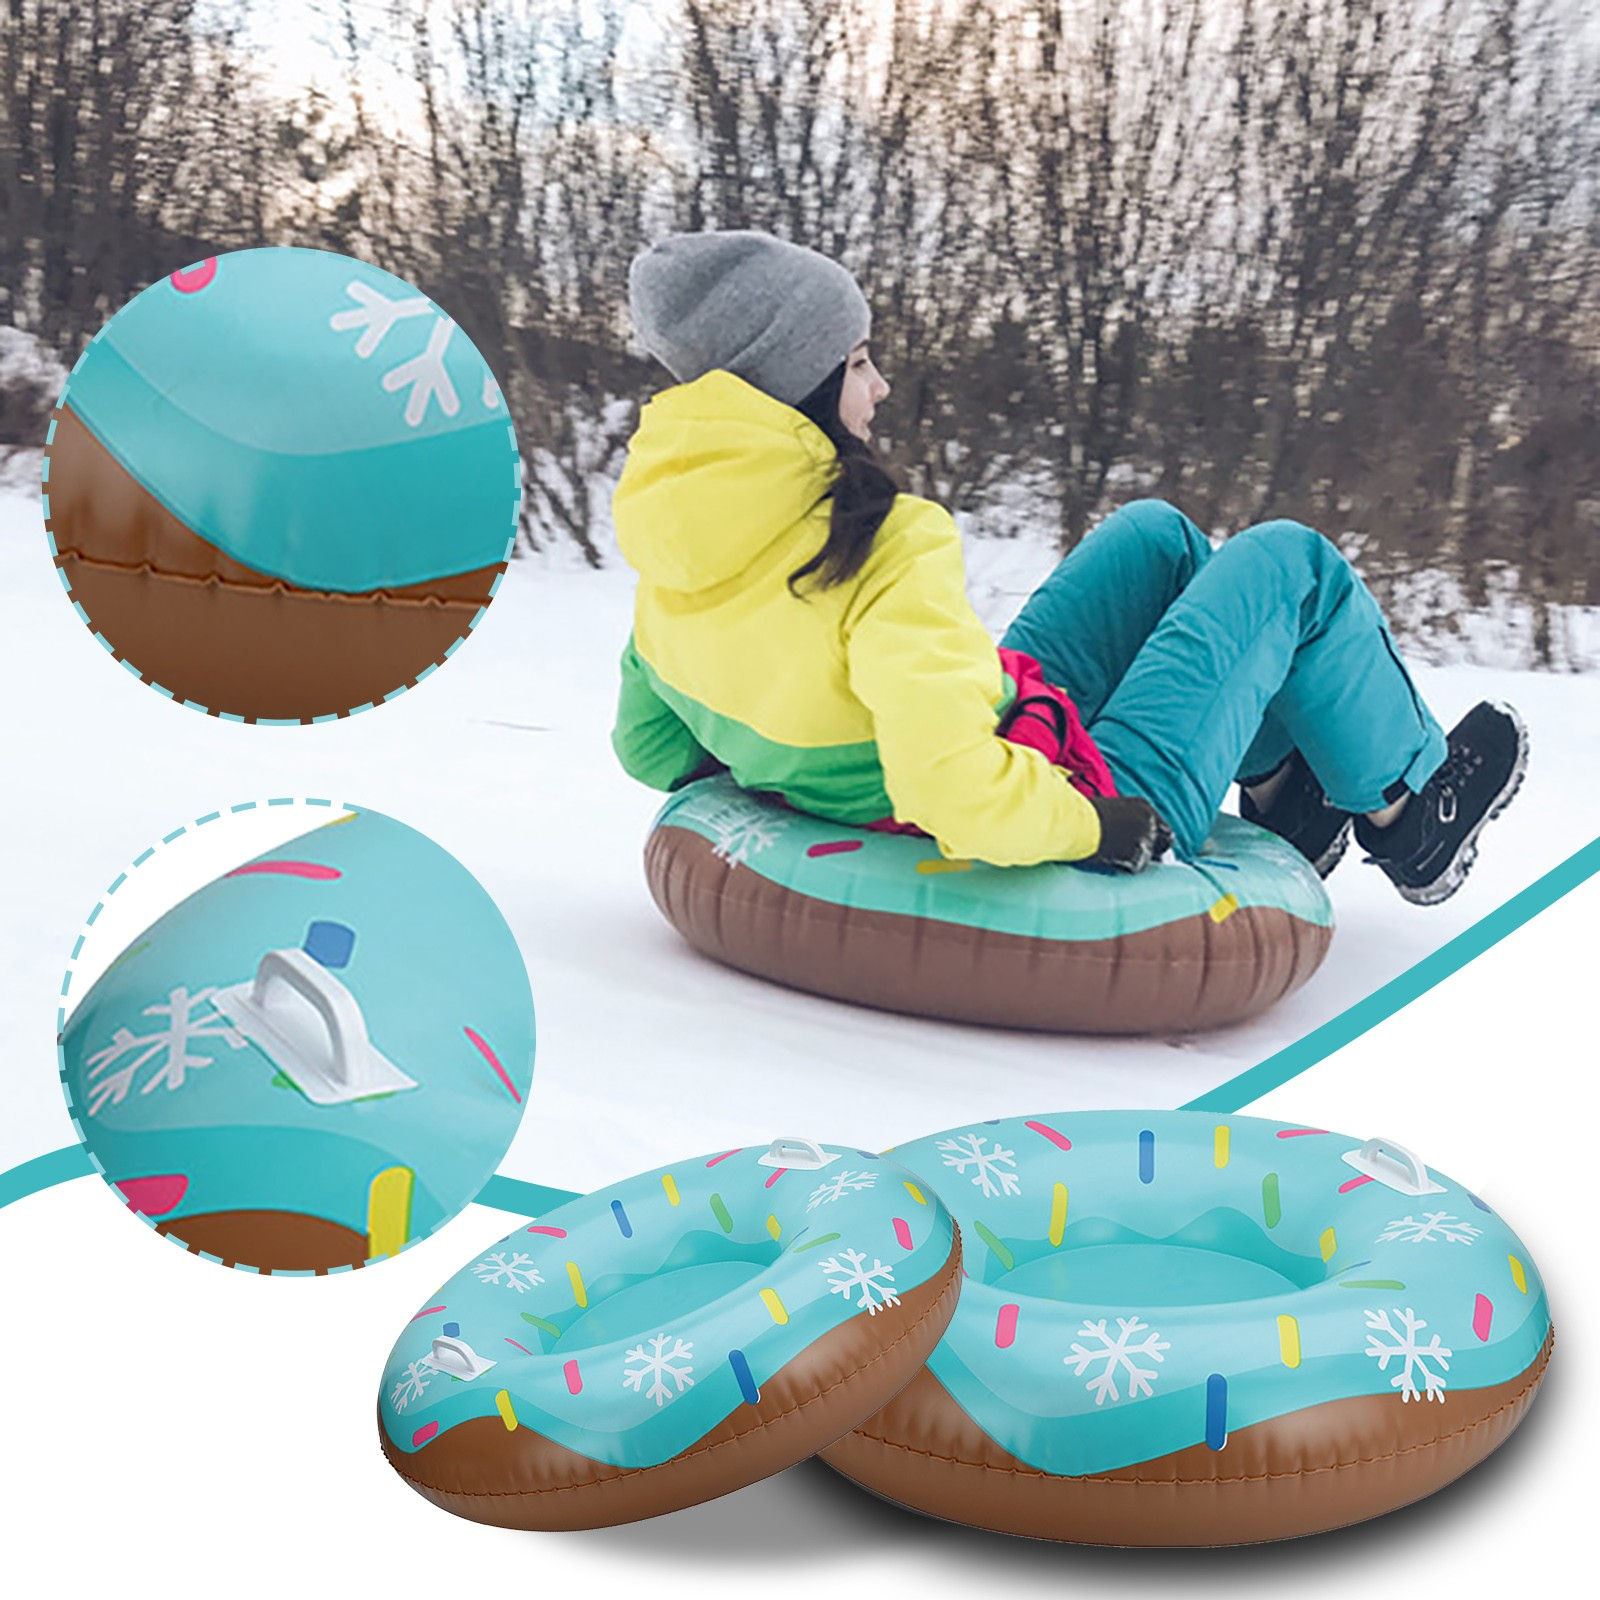 Inflatable ski ring Skiing Ring PVC Snow Sled Tire Tube for Kid Ski Pad Outdoor Sports With Handle Inflatable ski ring